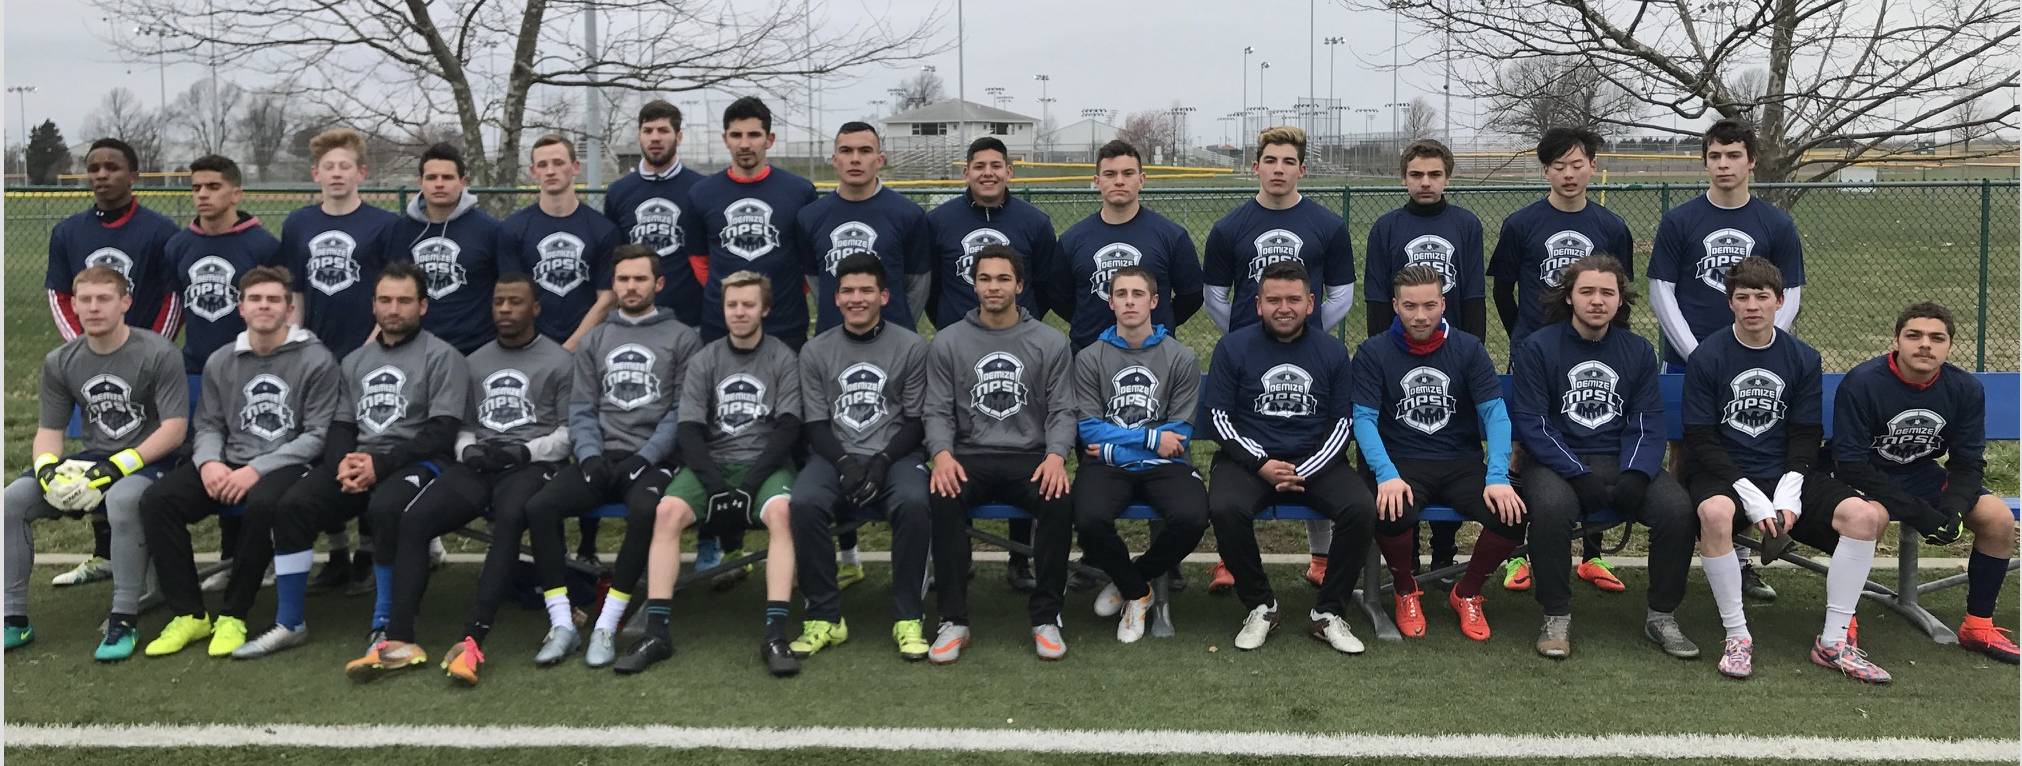 First Round of NPSL Tryouts a success